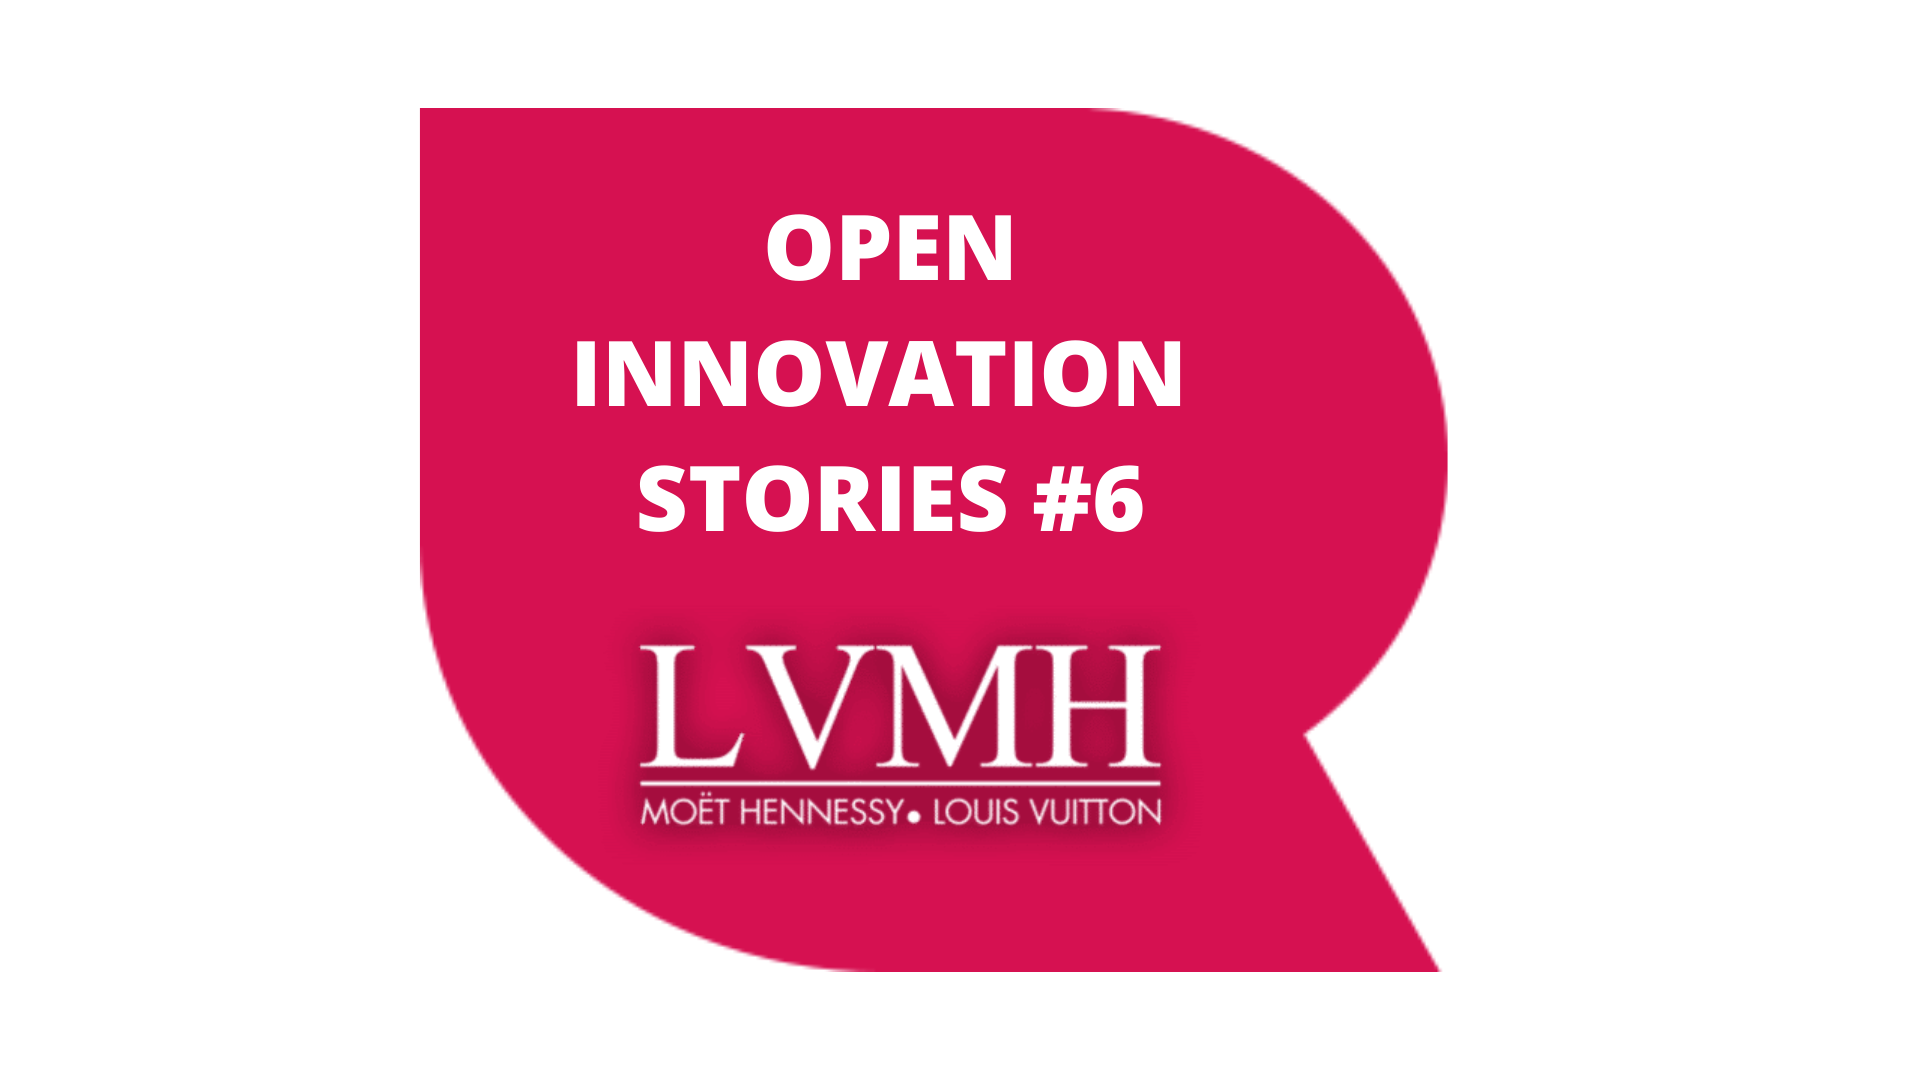 OPEN INNOVATION STORIES  #6